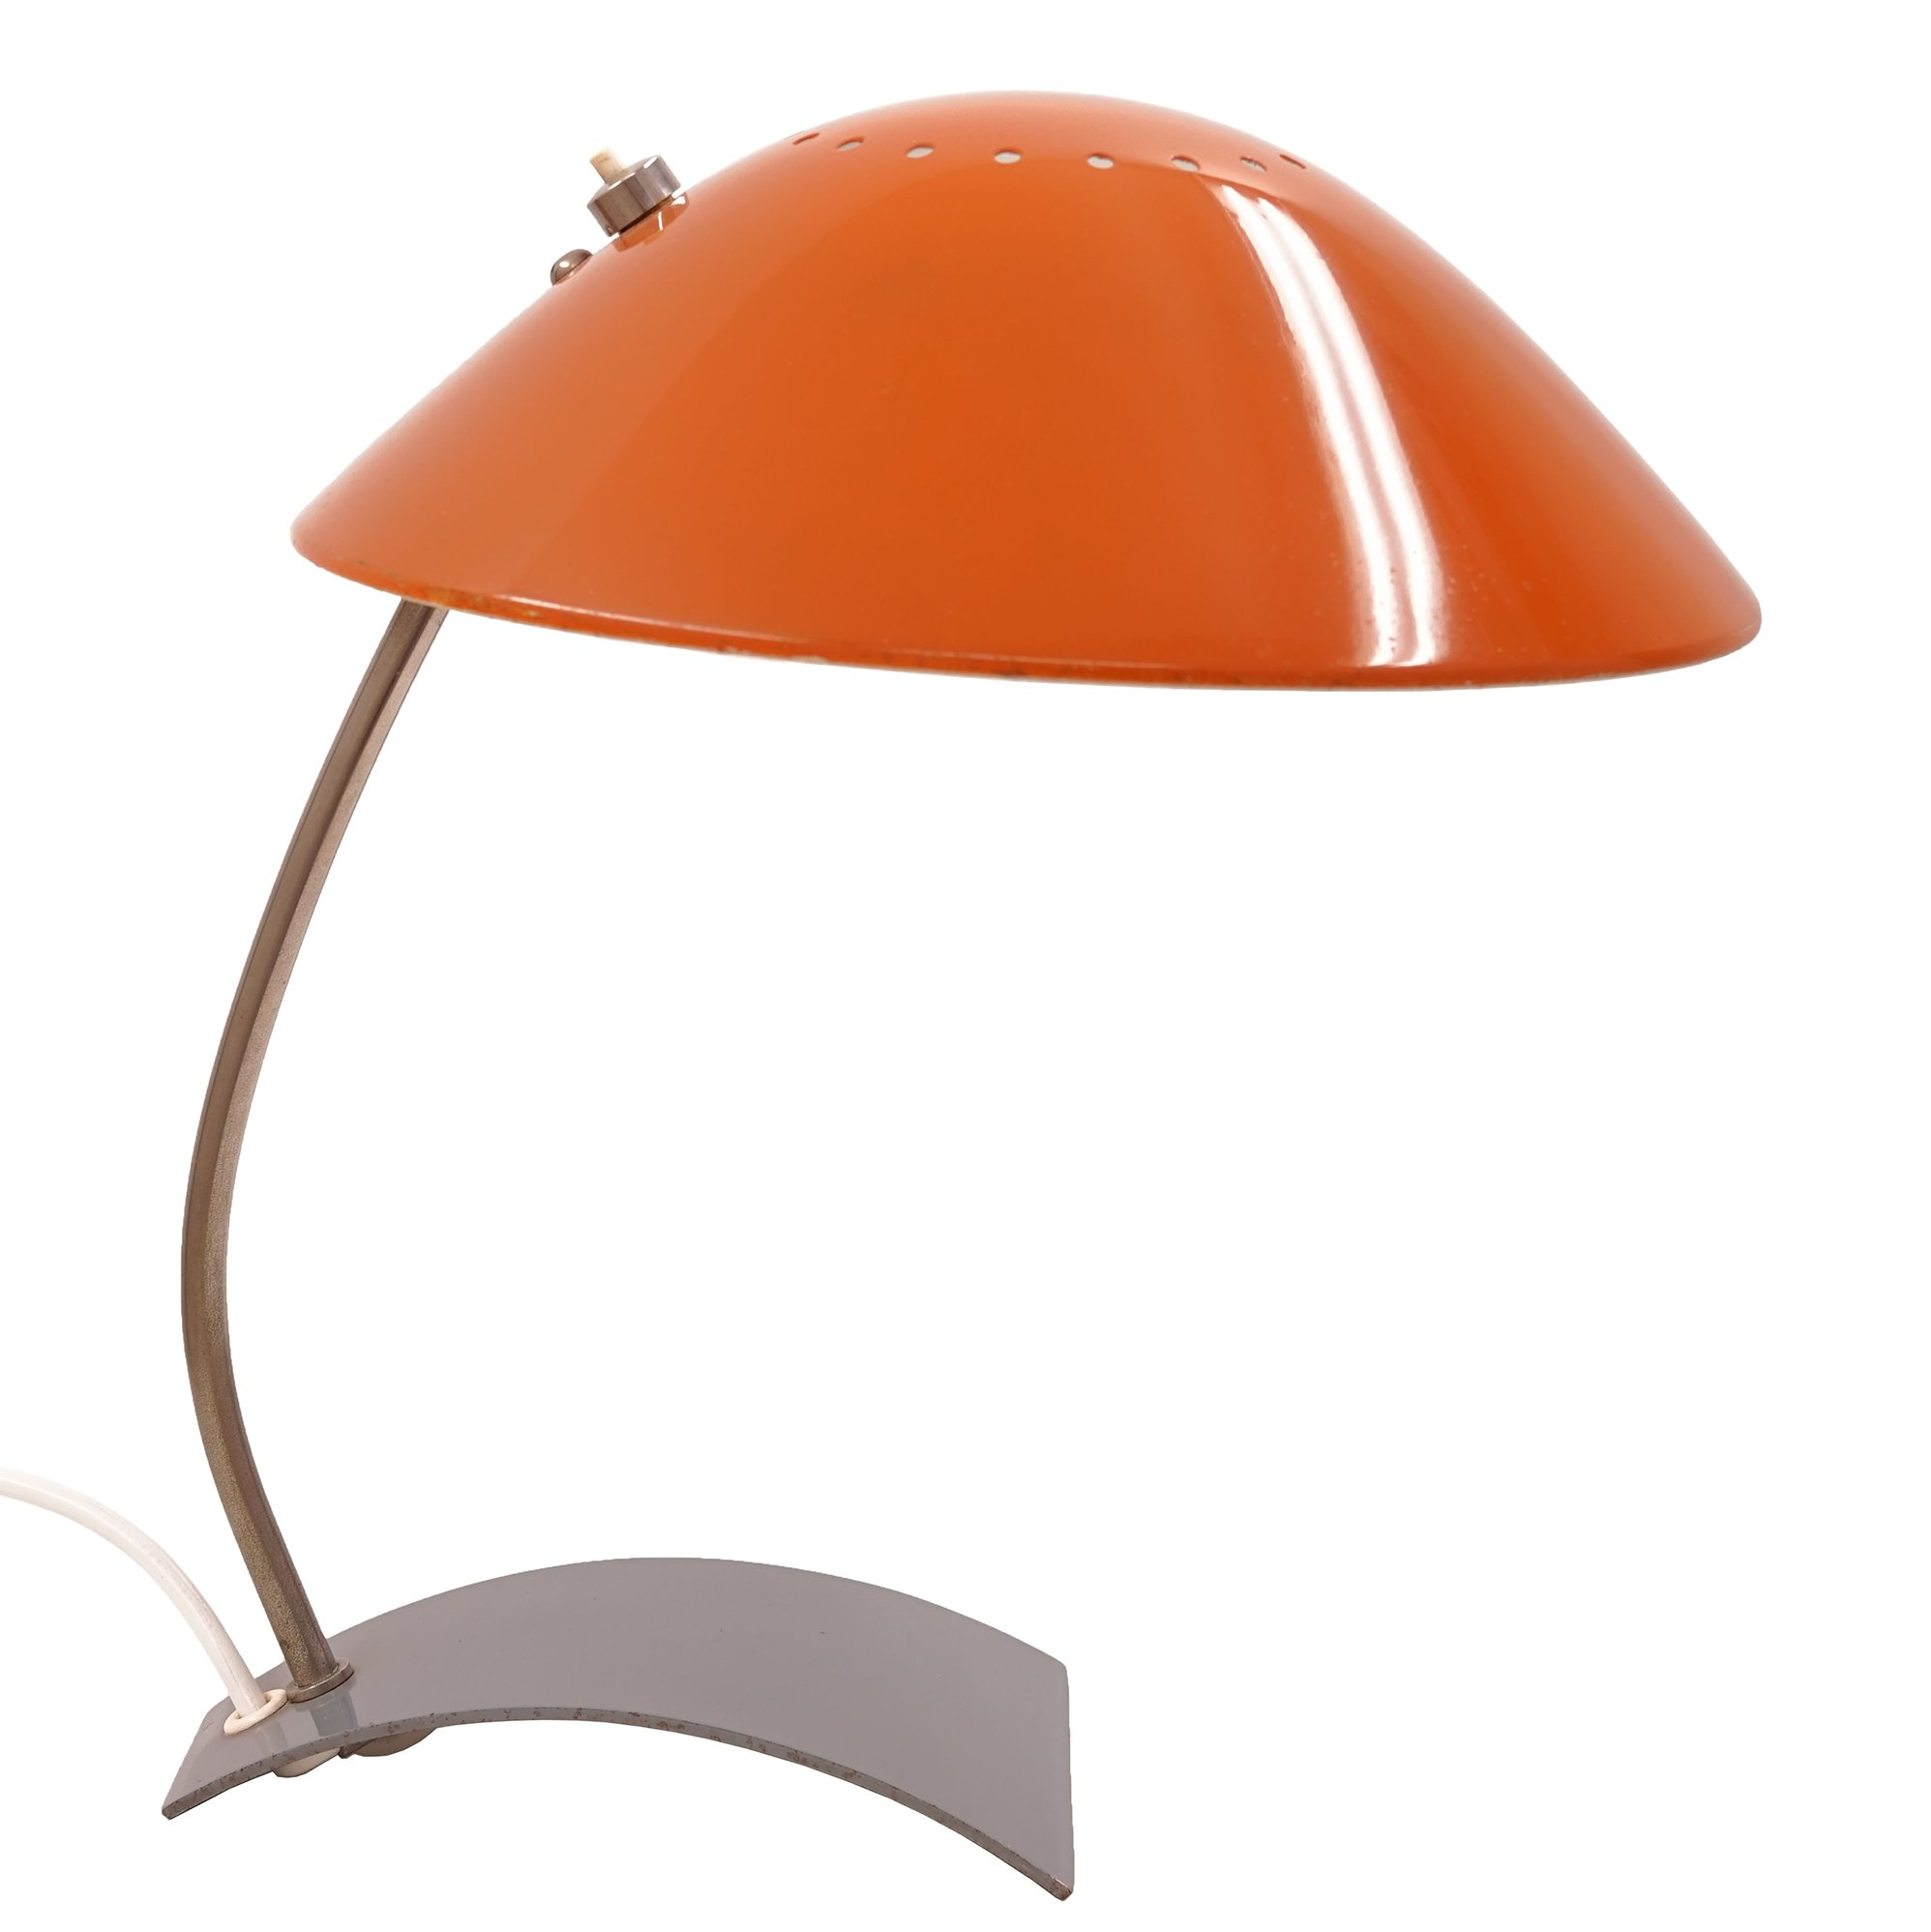 Leuchten Kaiser Kaiser Idell 6840 Table Lamp By Christian Dell For Kaiser Leuchten | #133305